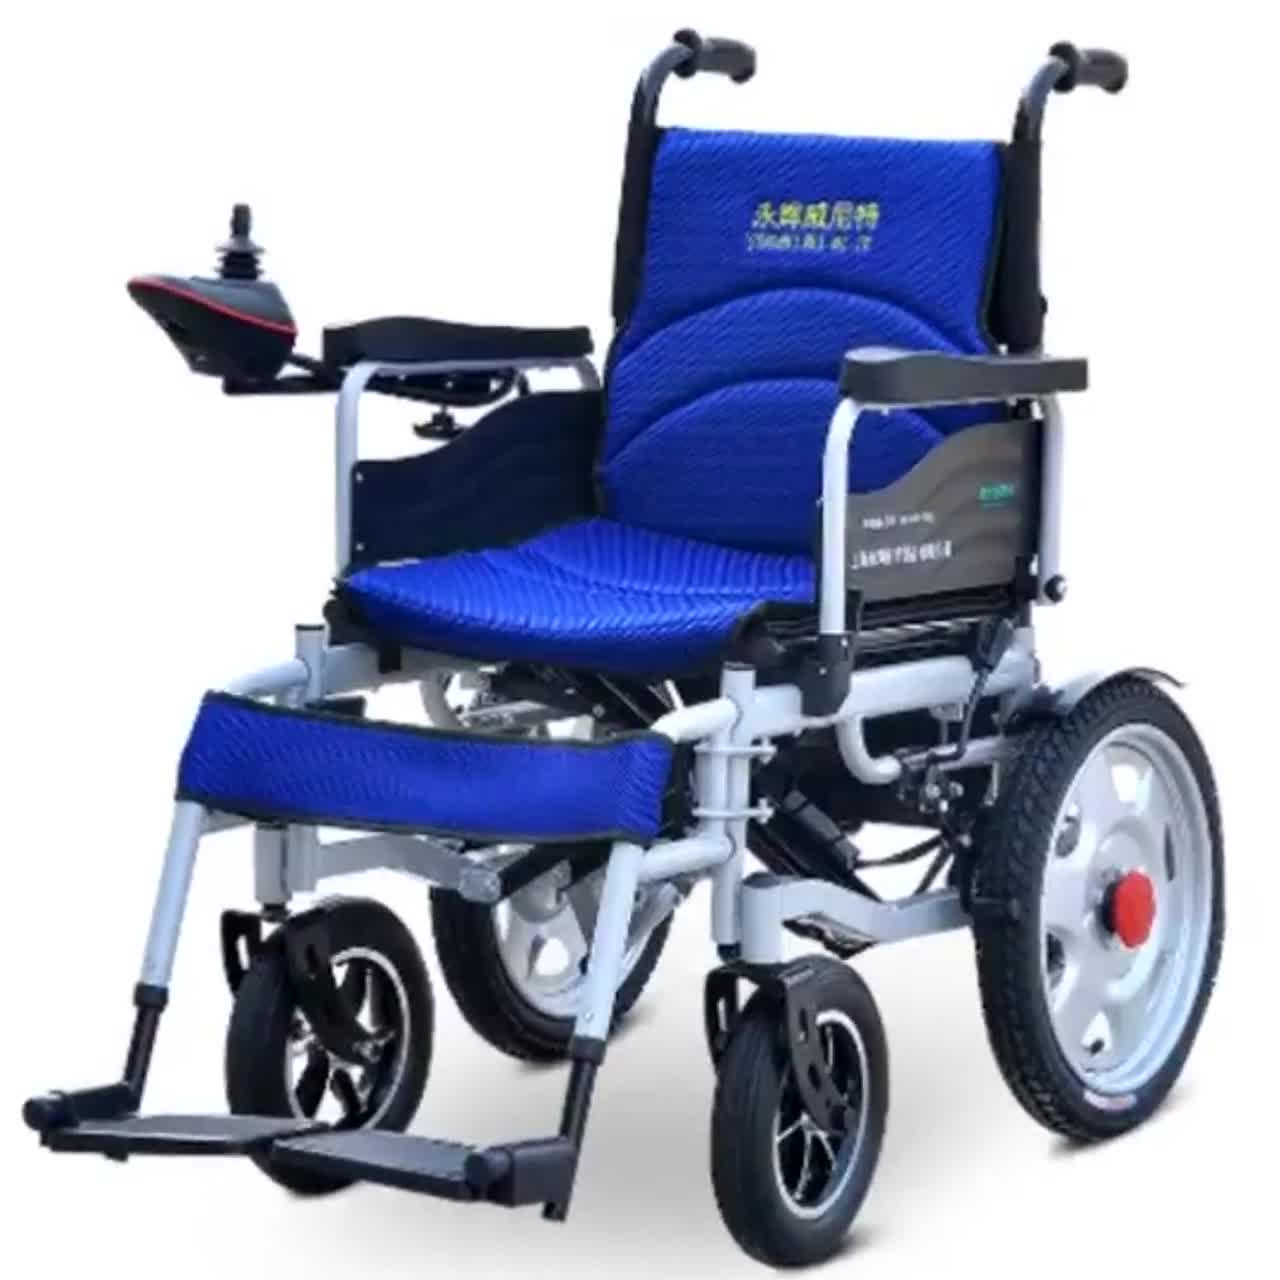 motorized chairs for elderly womb chair review luxury portable folding power wheelchair